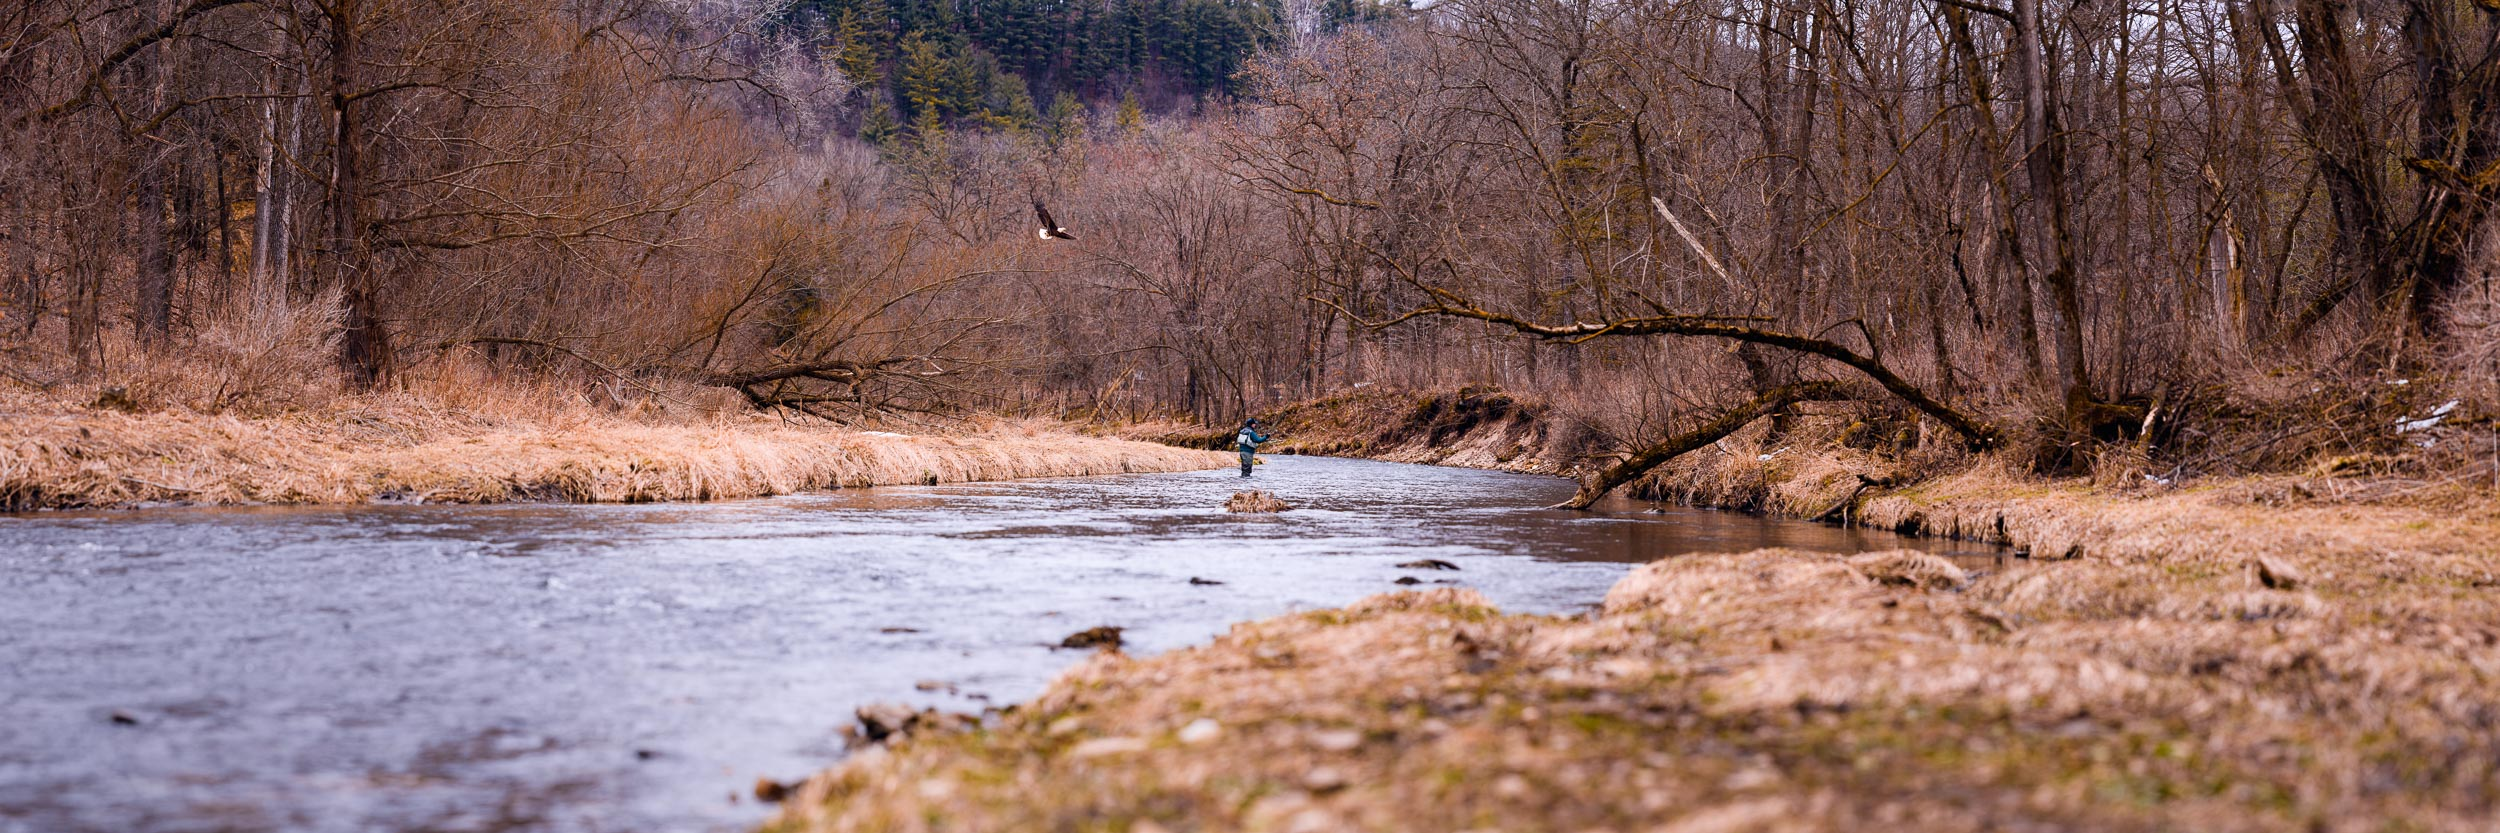 A bald eagle floats past a fisherman looking for trout in the Whitewater River.